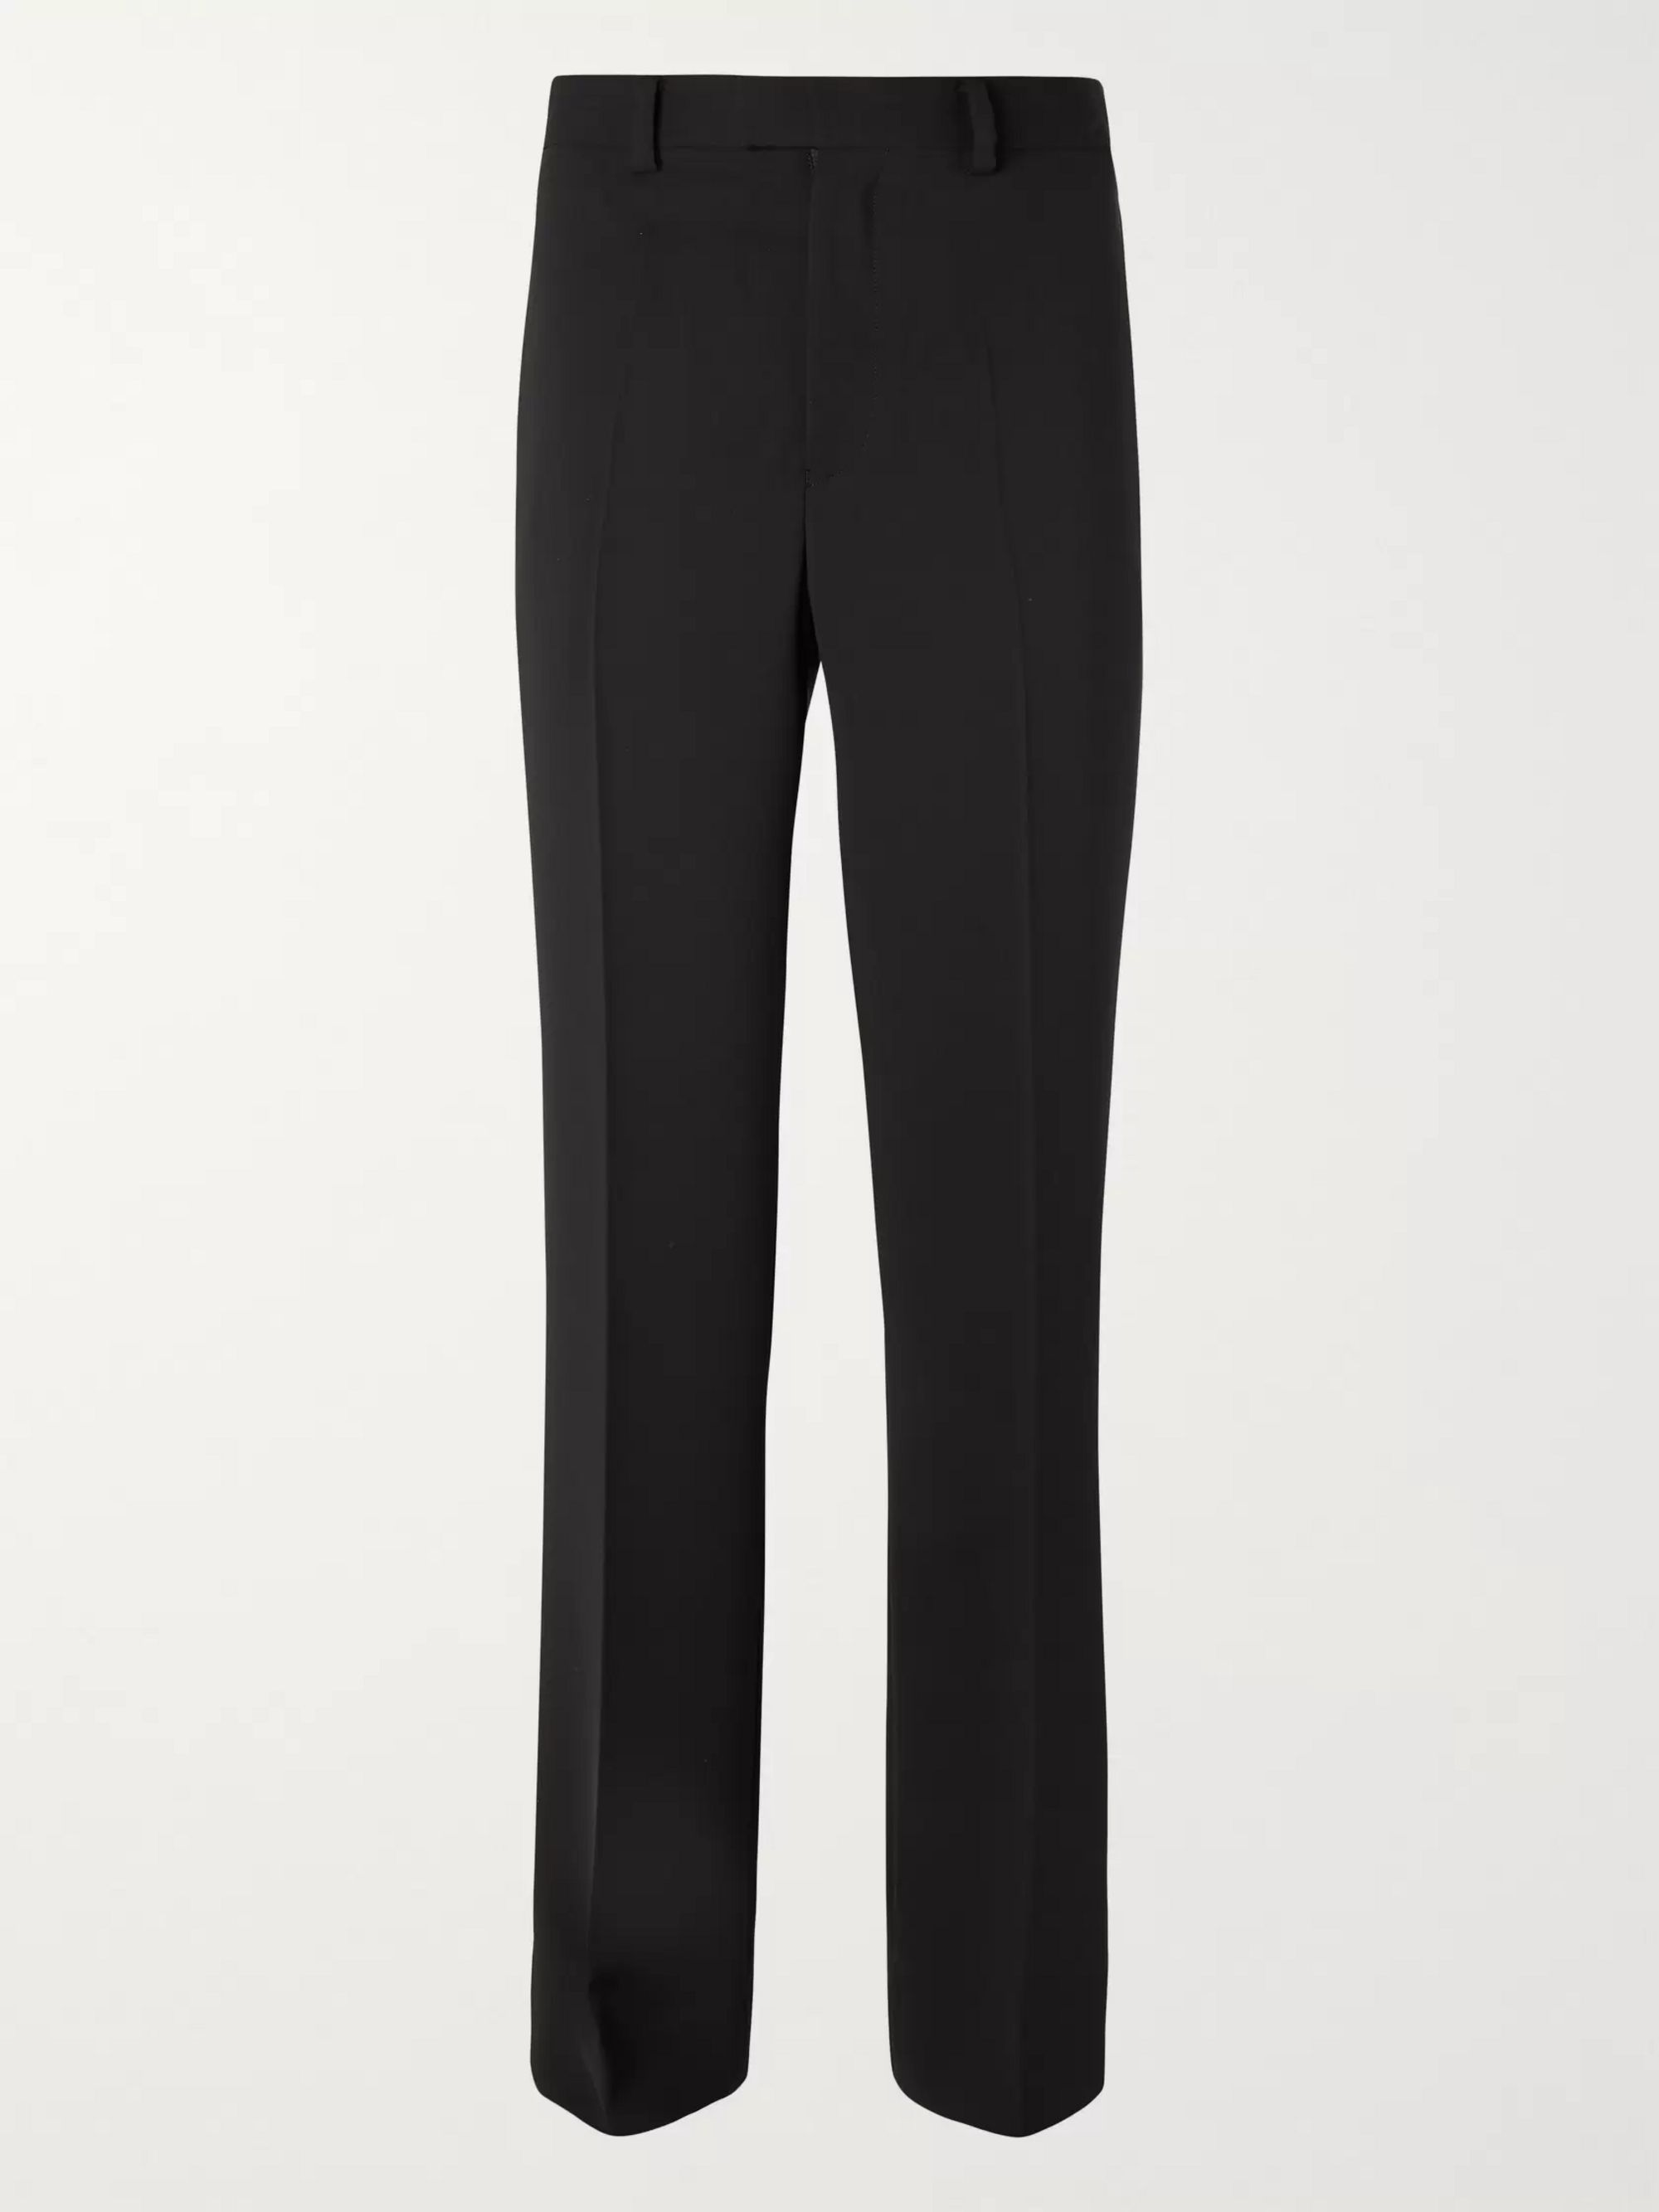 Undercover Black Flared Crepe Trousers